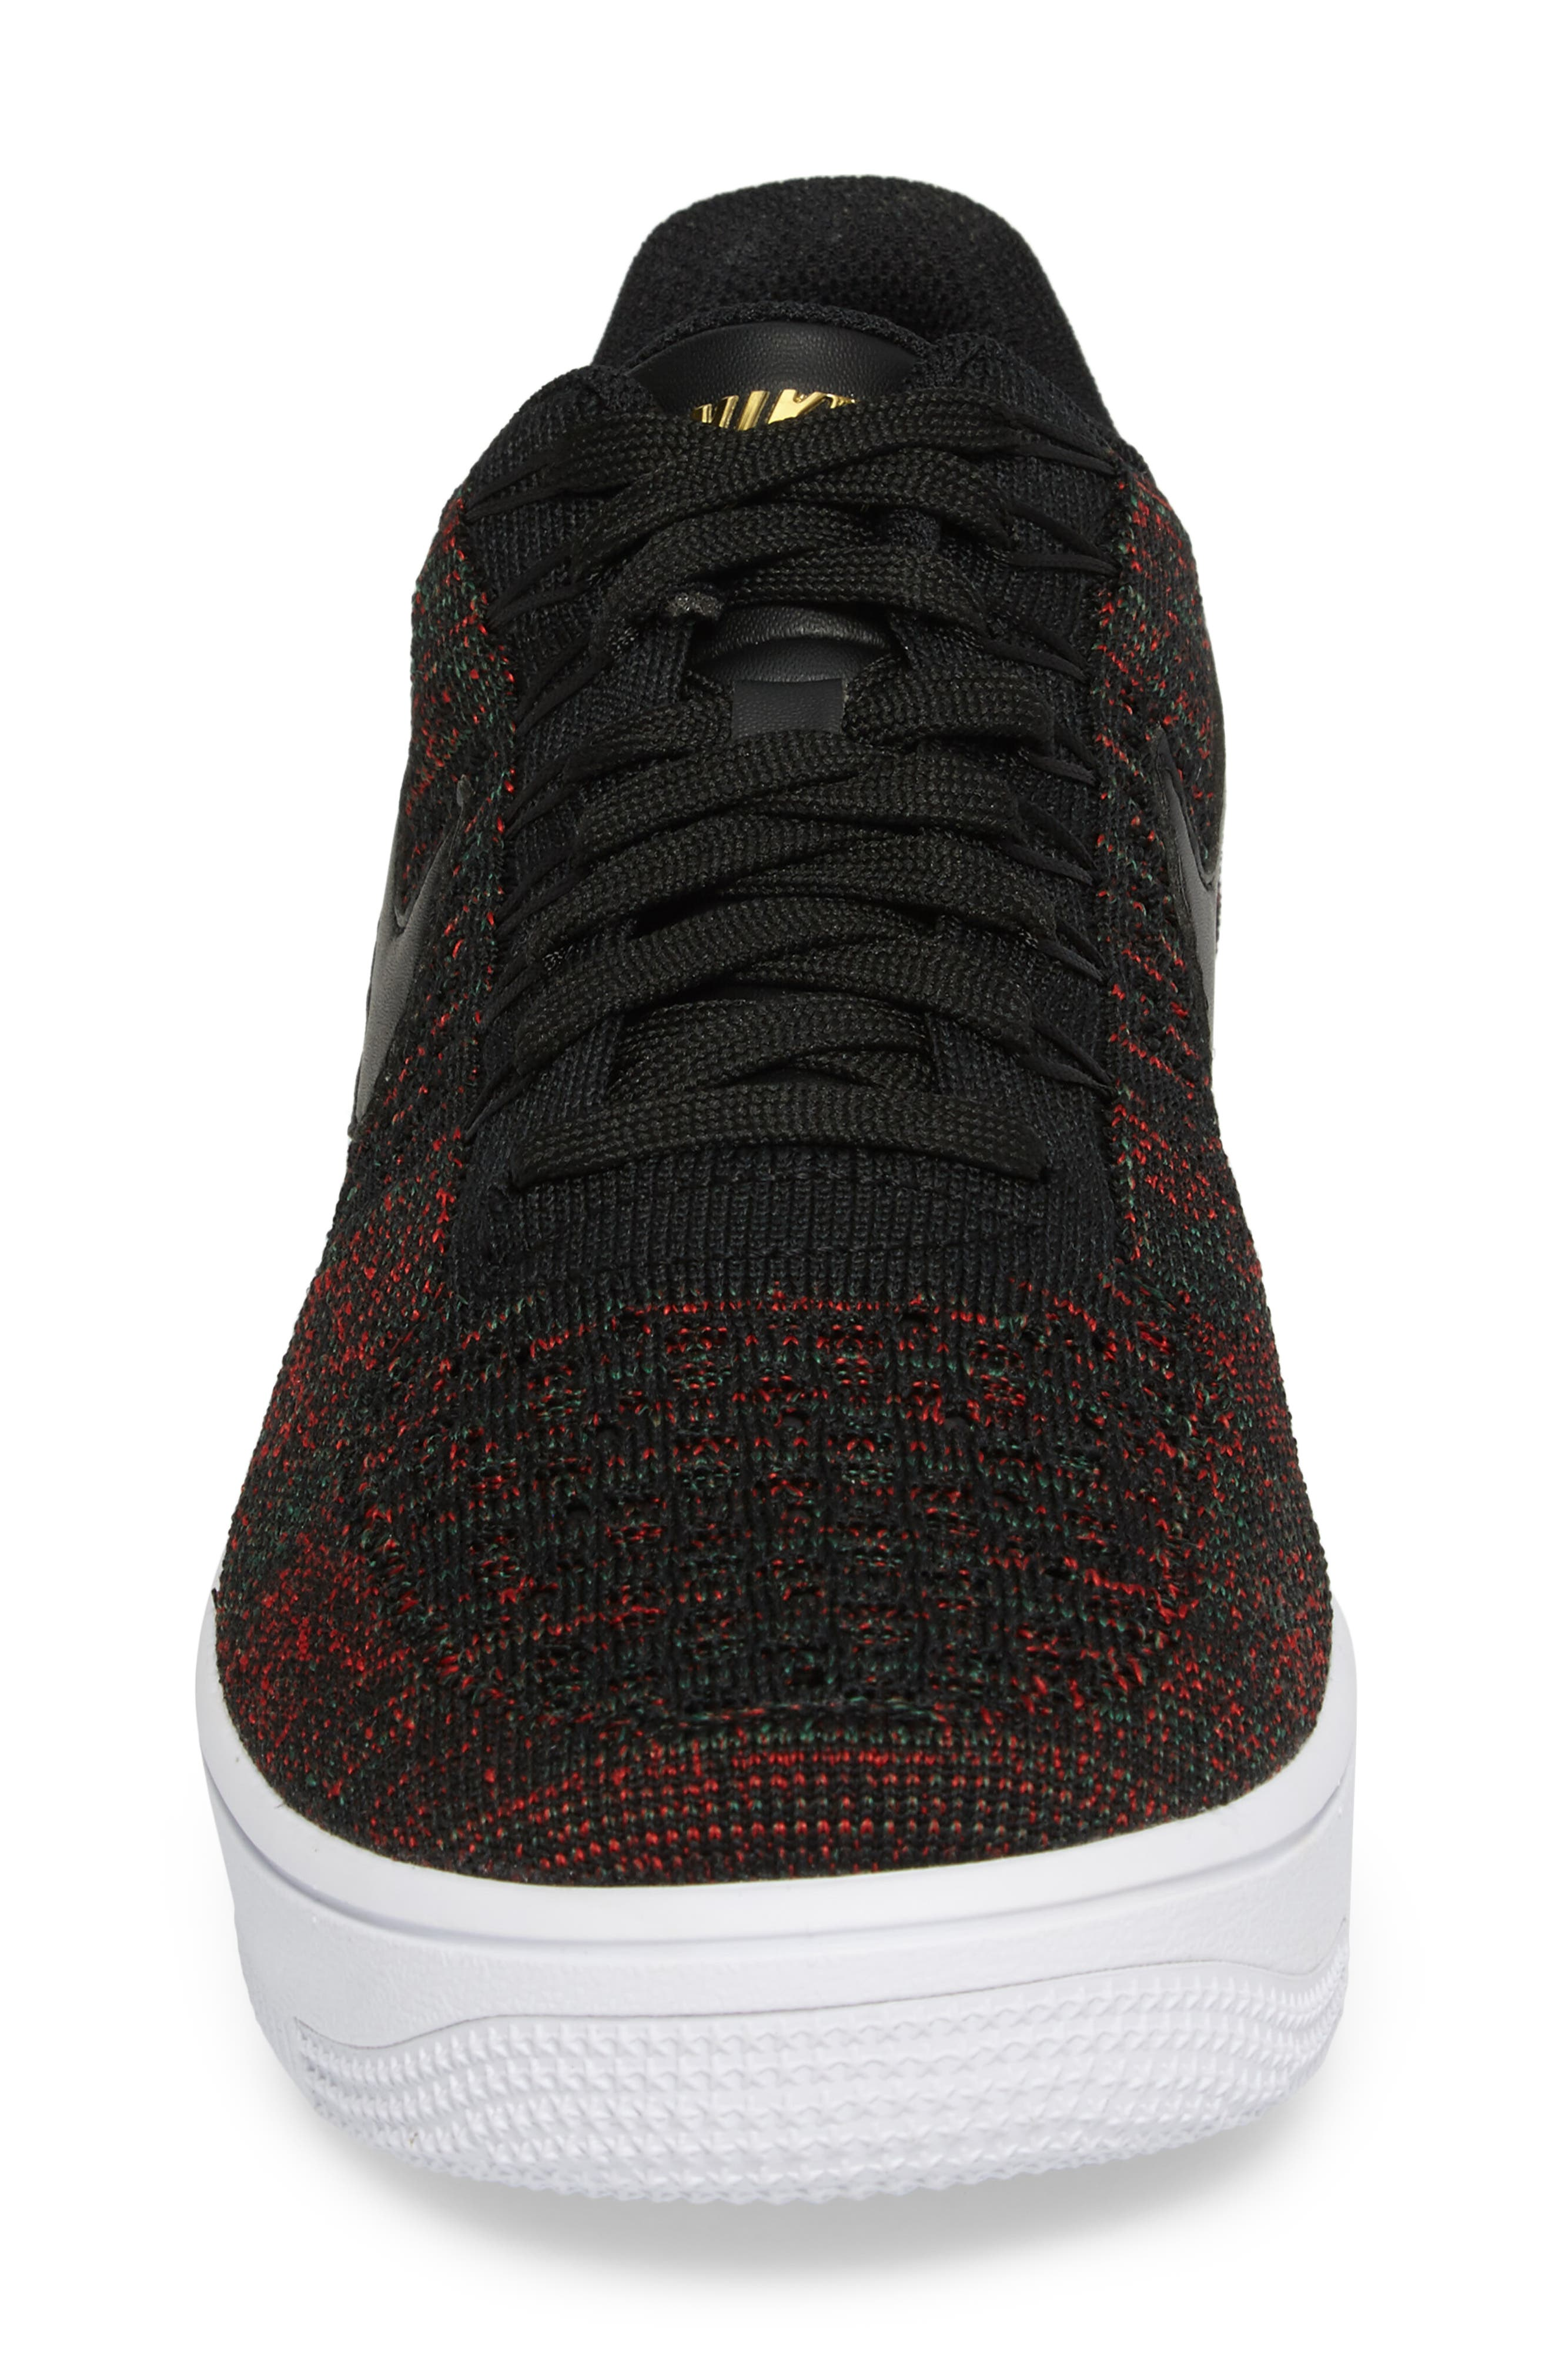 Air Force 1 Ultra Flyknit Low Sneaker,                             Alternate thumbnail 4, color,                             005